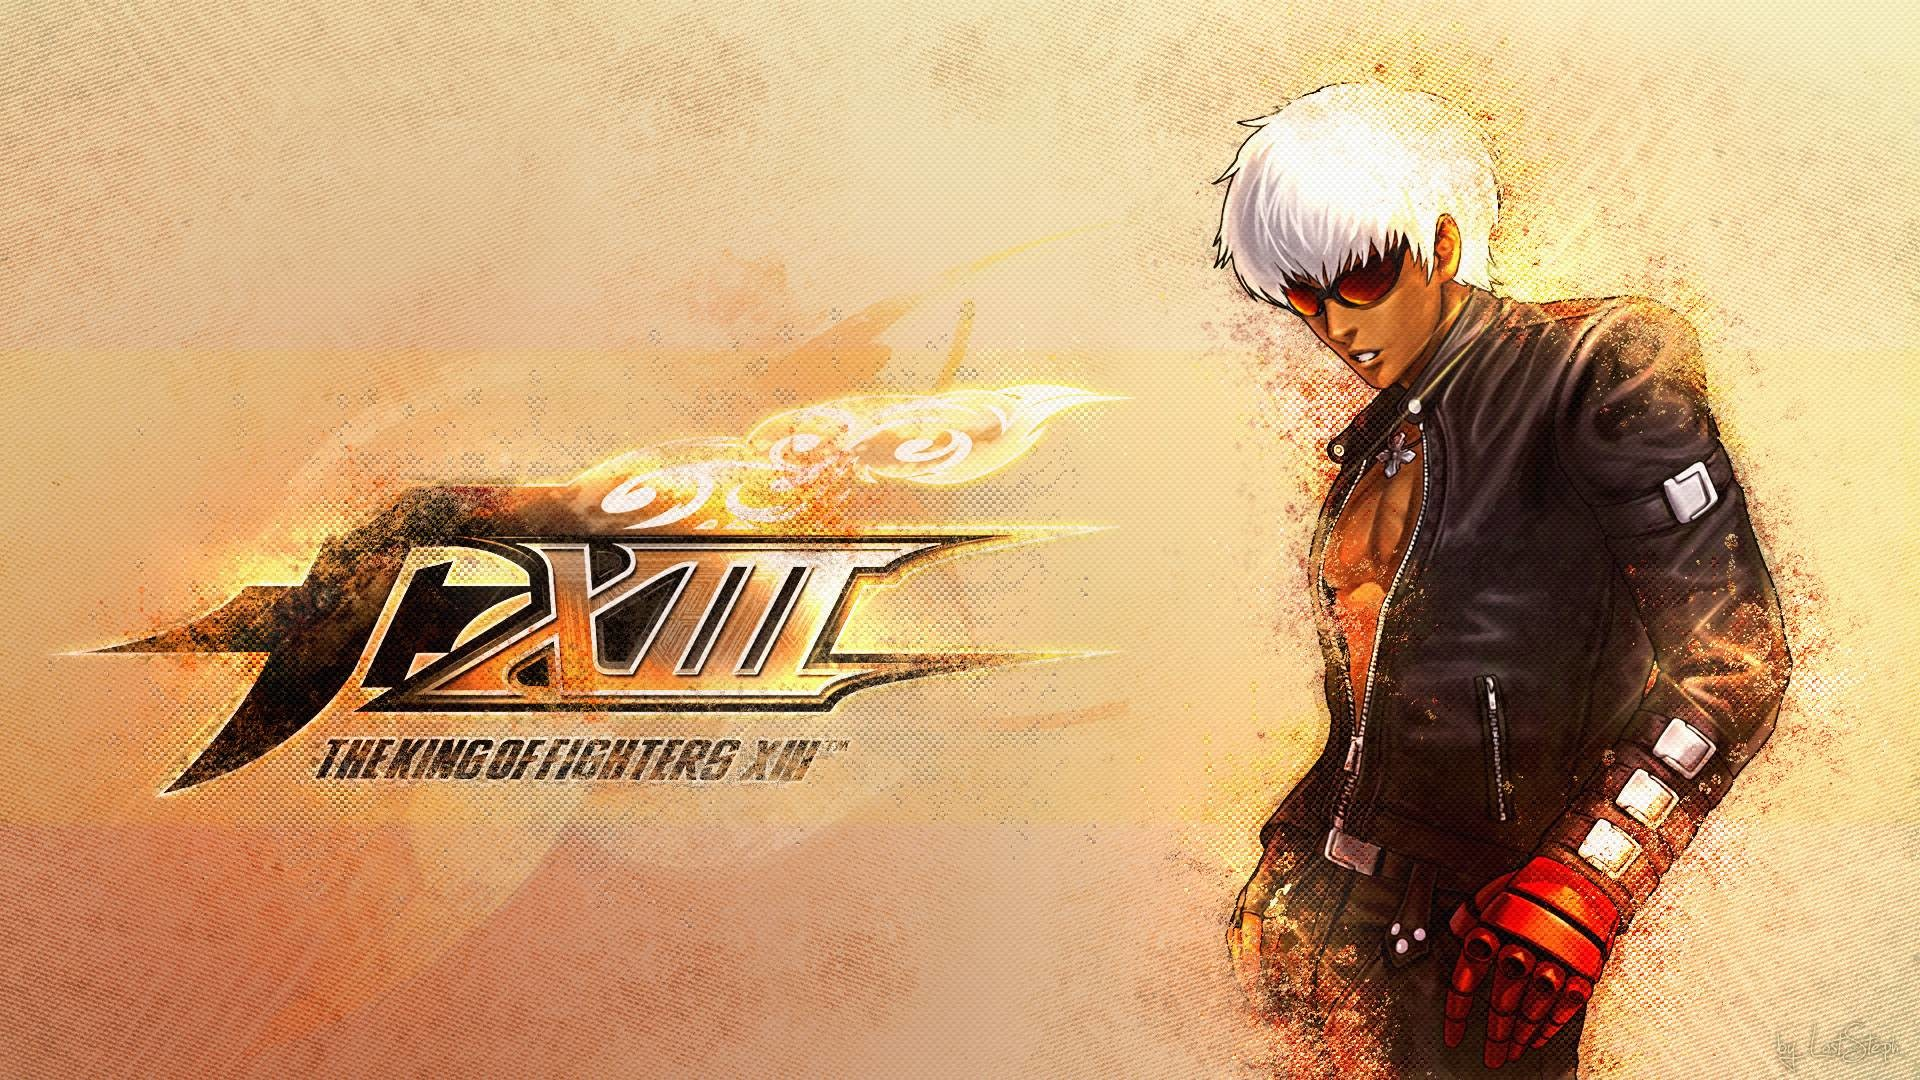 Best 55 The King Of Fighters Wallpaper On Hipwallpaper Lion